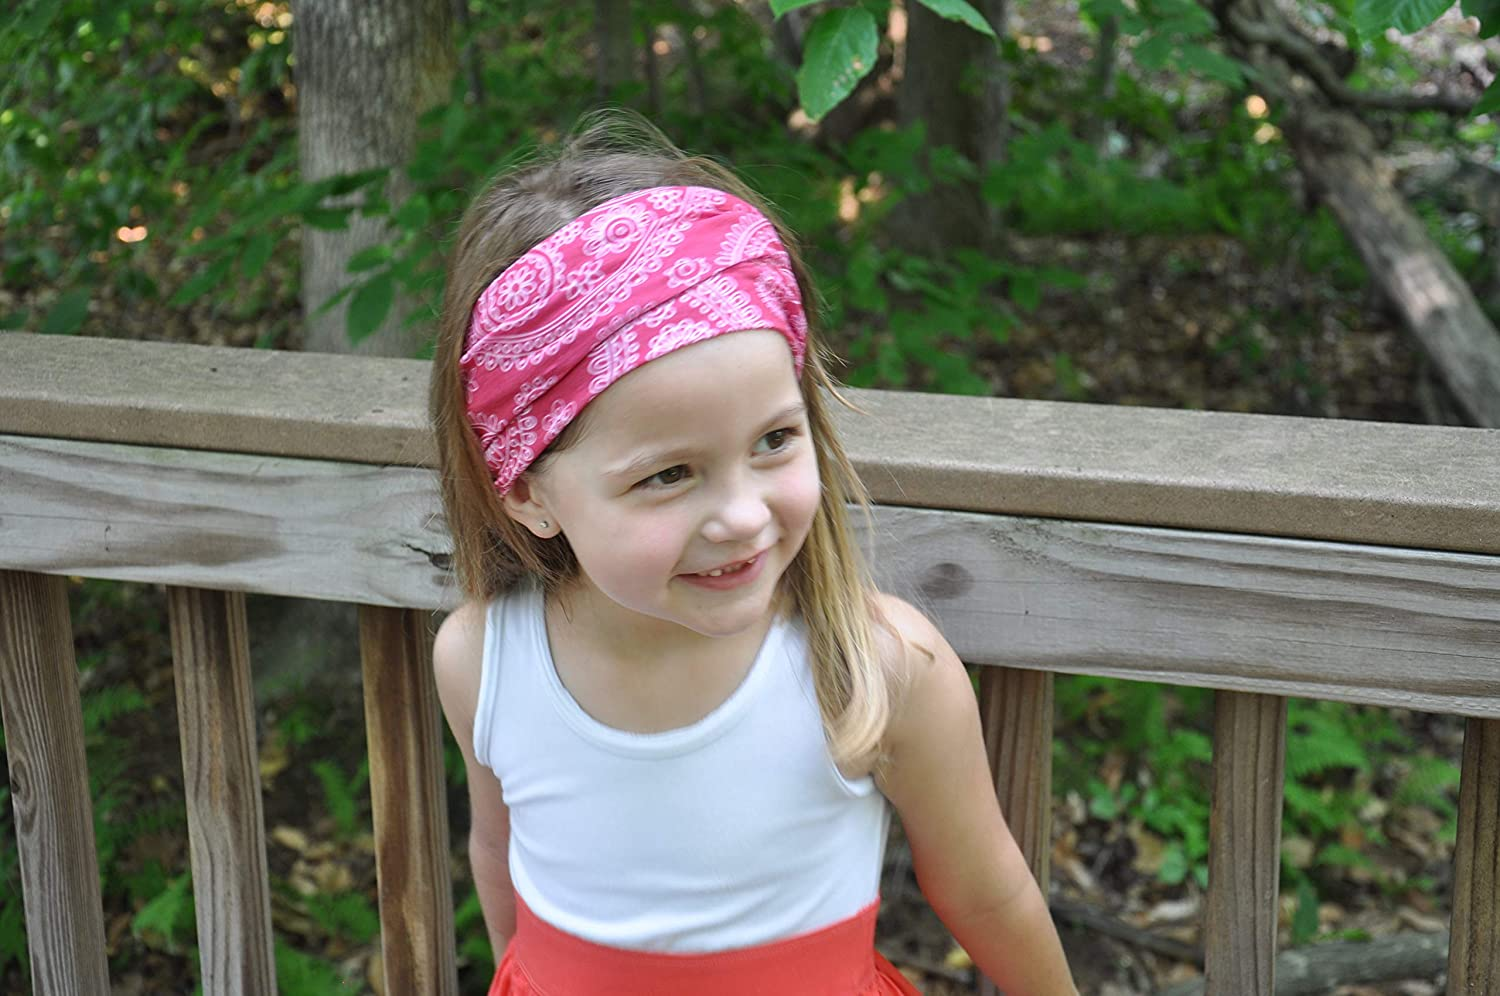 Skulls Discontinued by Manufacturer O3 Kids Multifunctional Headwear Sport Scarf